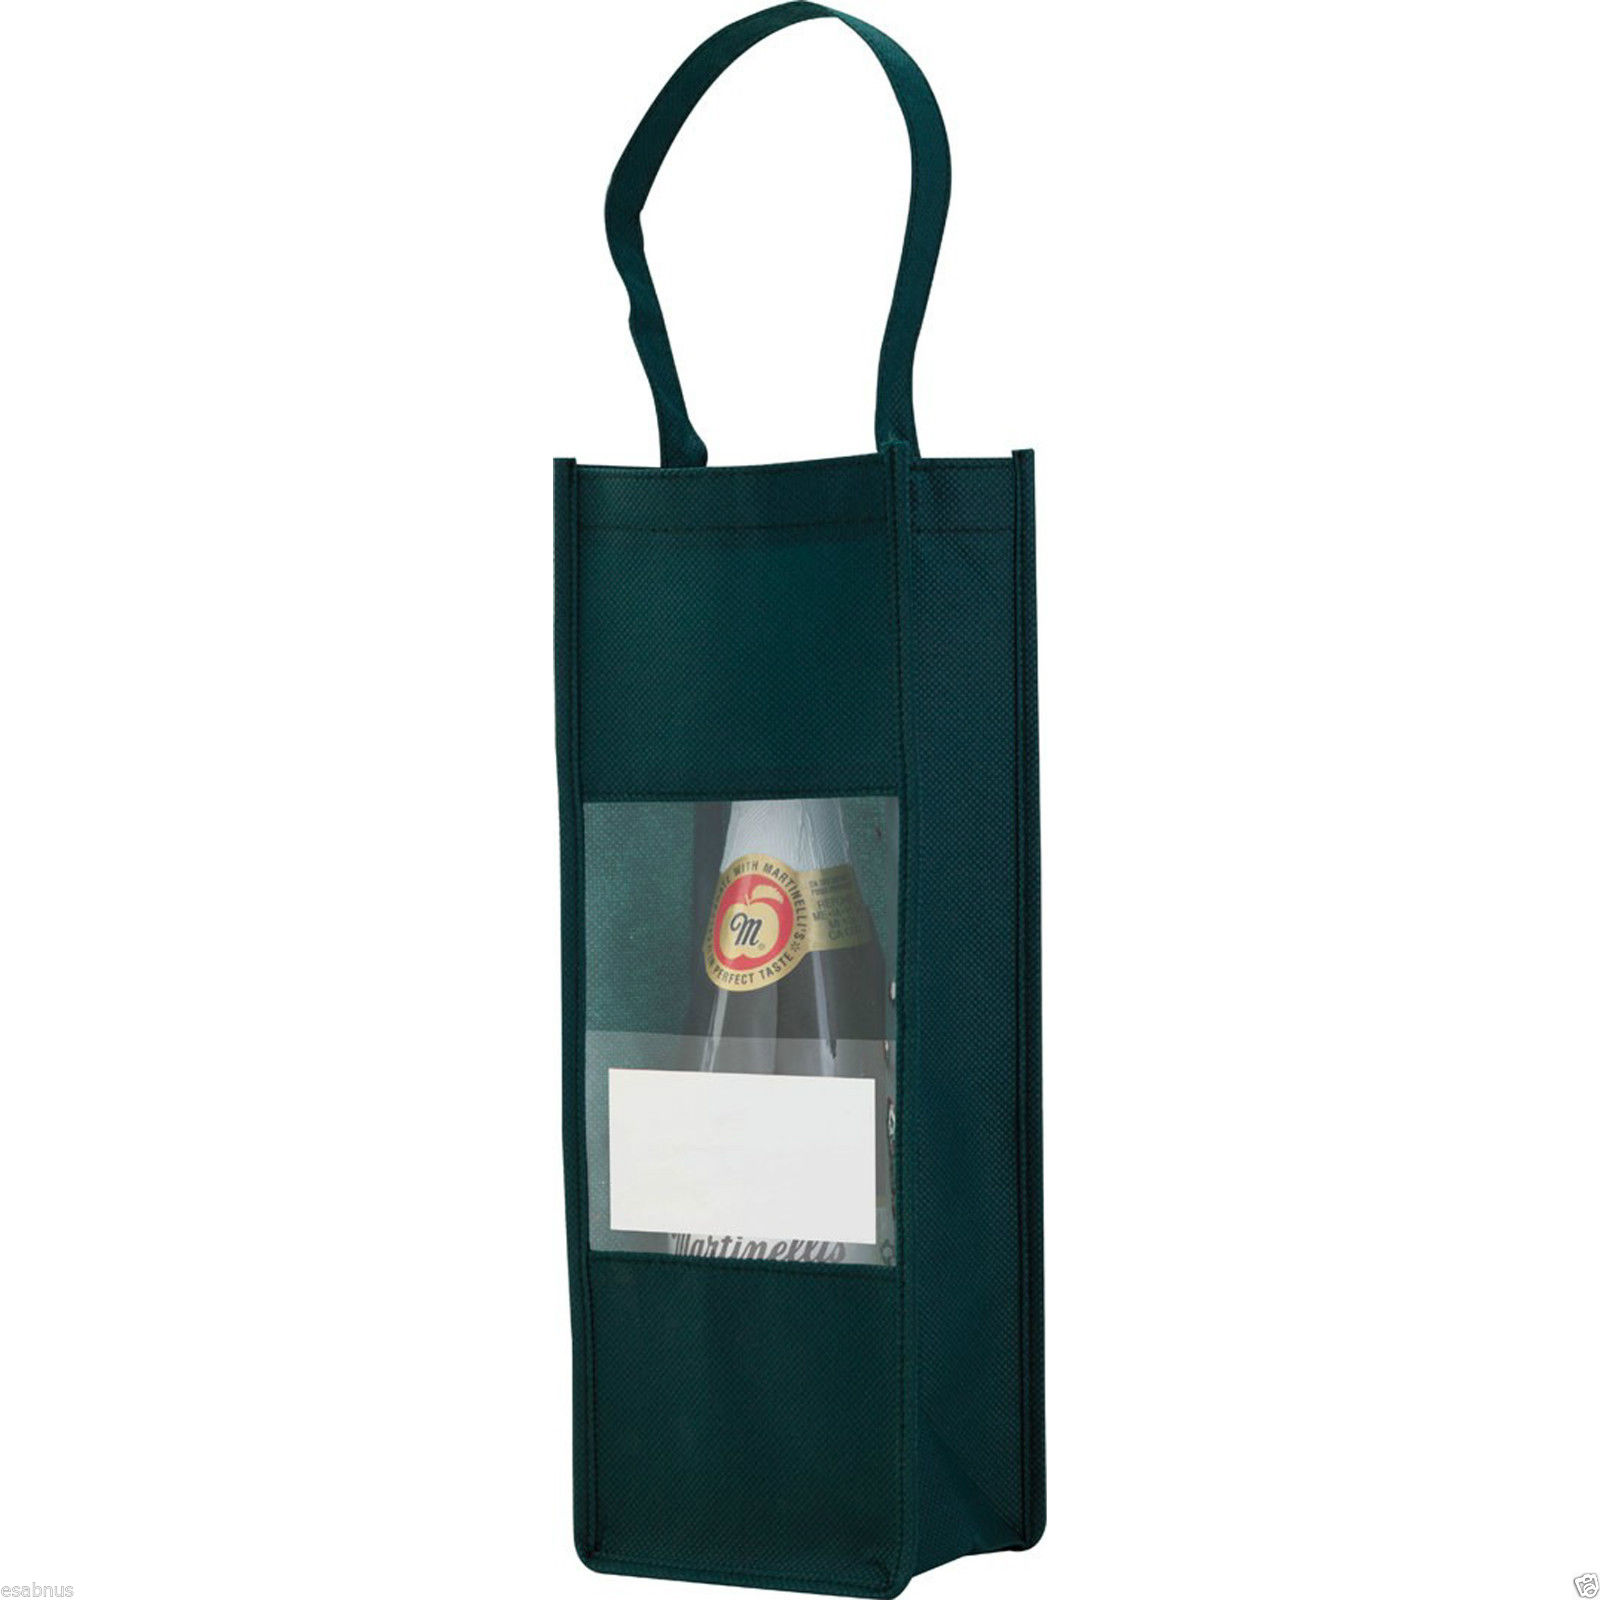 Wine-Bottle-Carrier-Bag-Non-woven-clear-front-amp-pocket-for-your-message-Gift